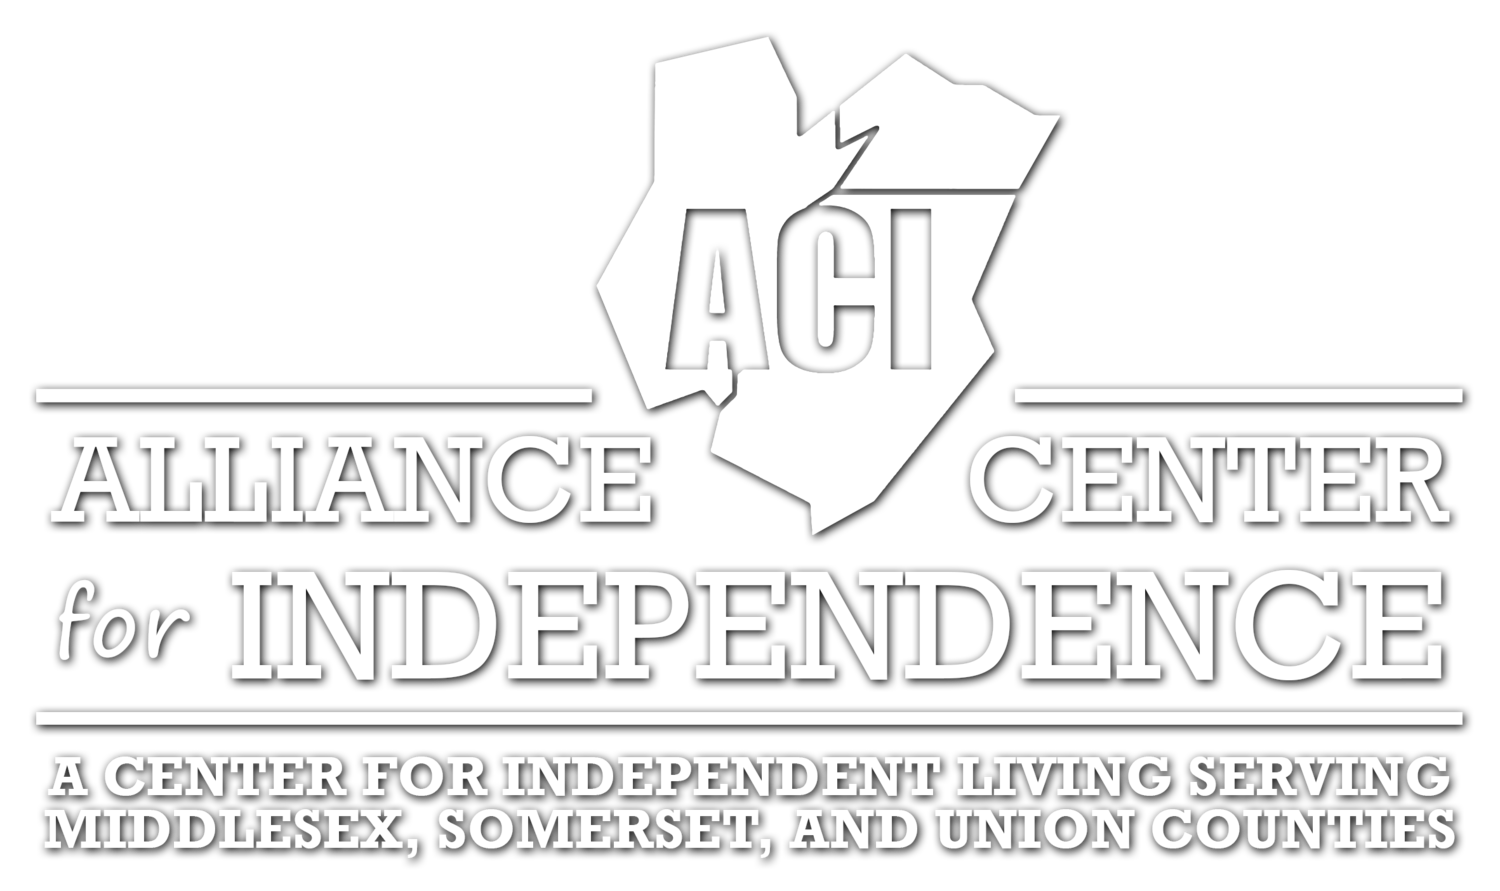 Alliance Center for Independence